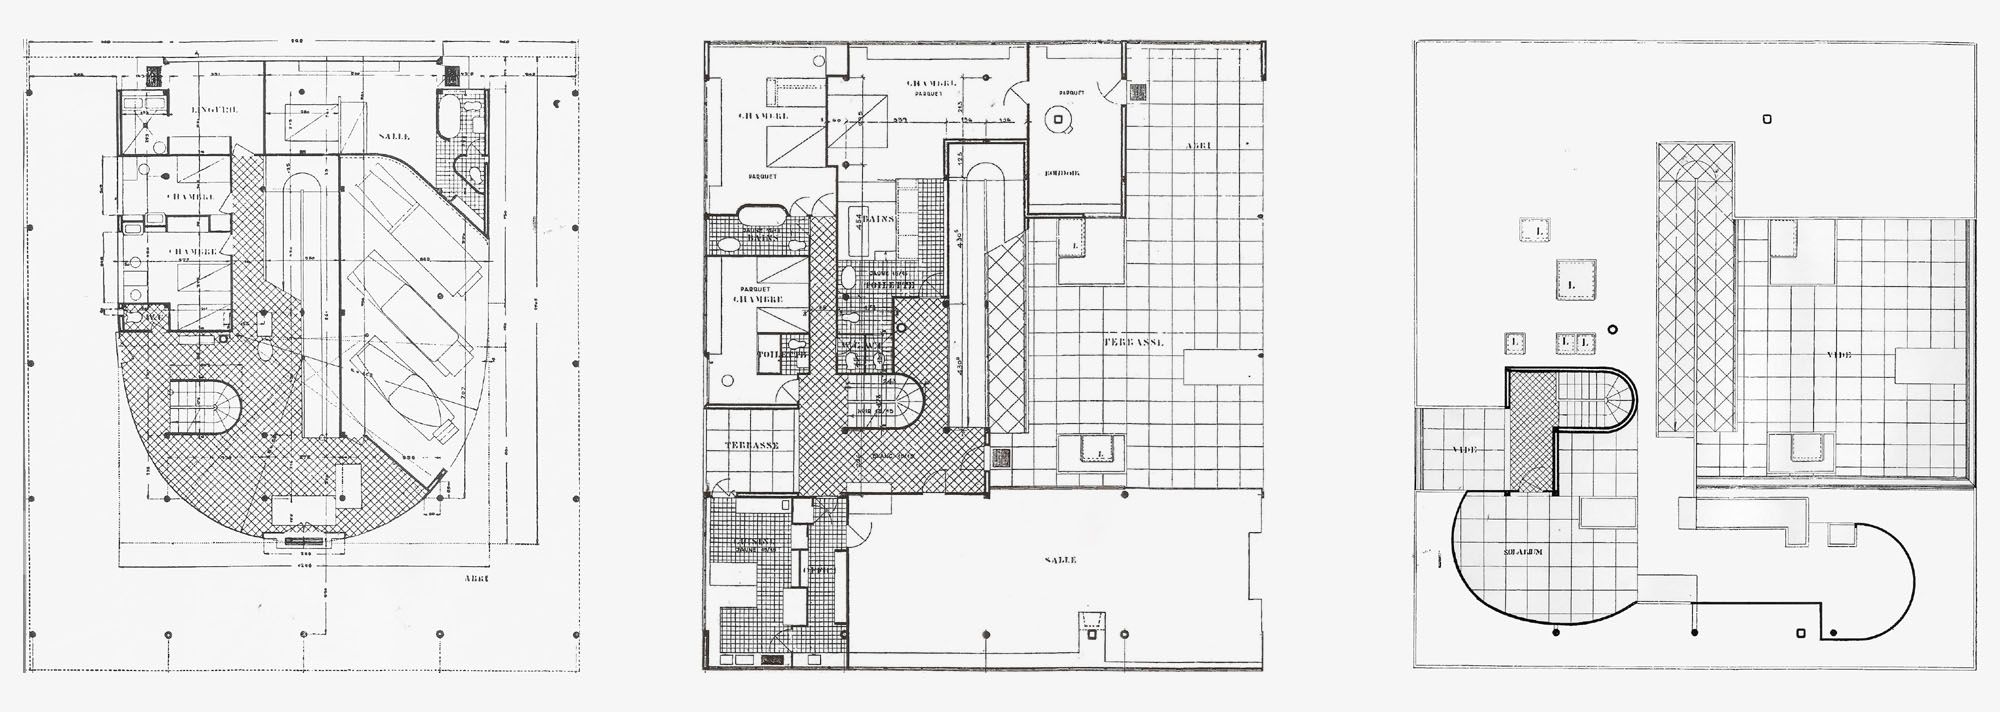 Popular Villa Savoye Le Corbusier Poissy floorplans